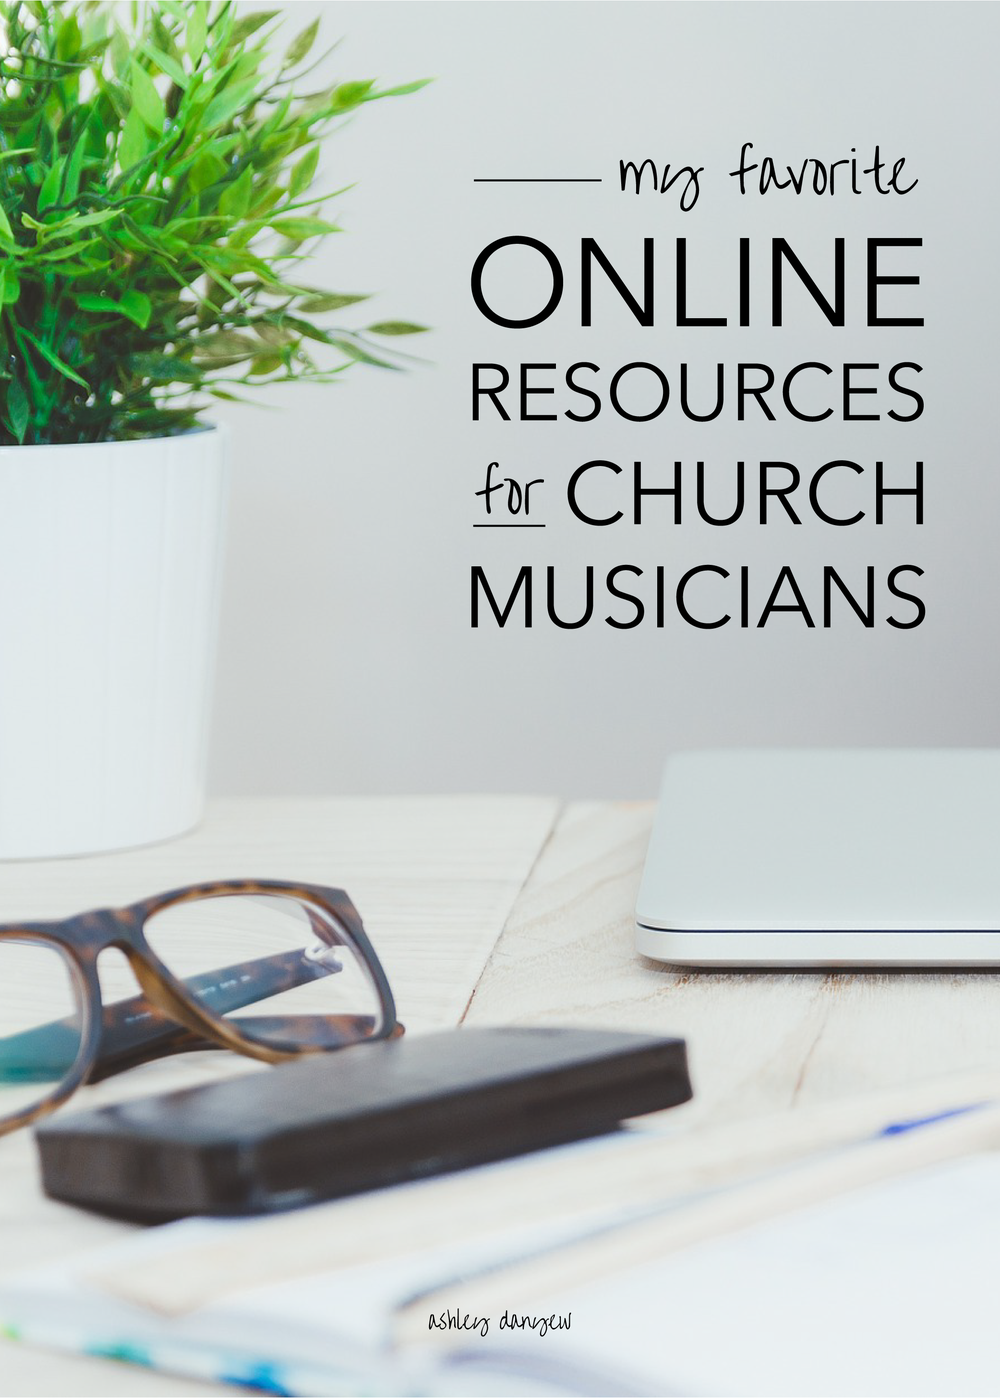 My-Favorite-Online-Resources-for-Church-Musicians-01.png